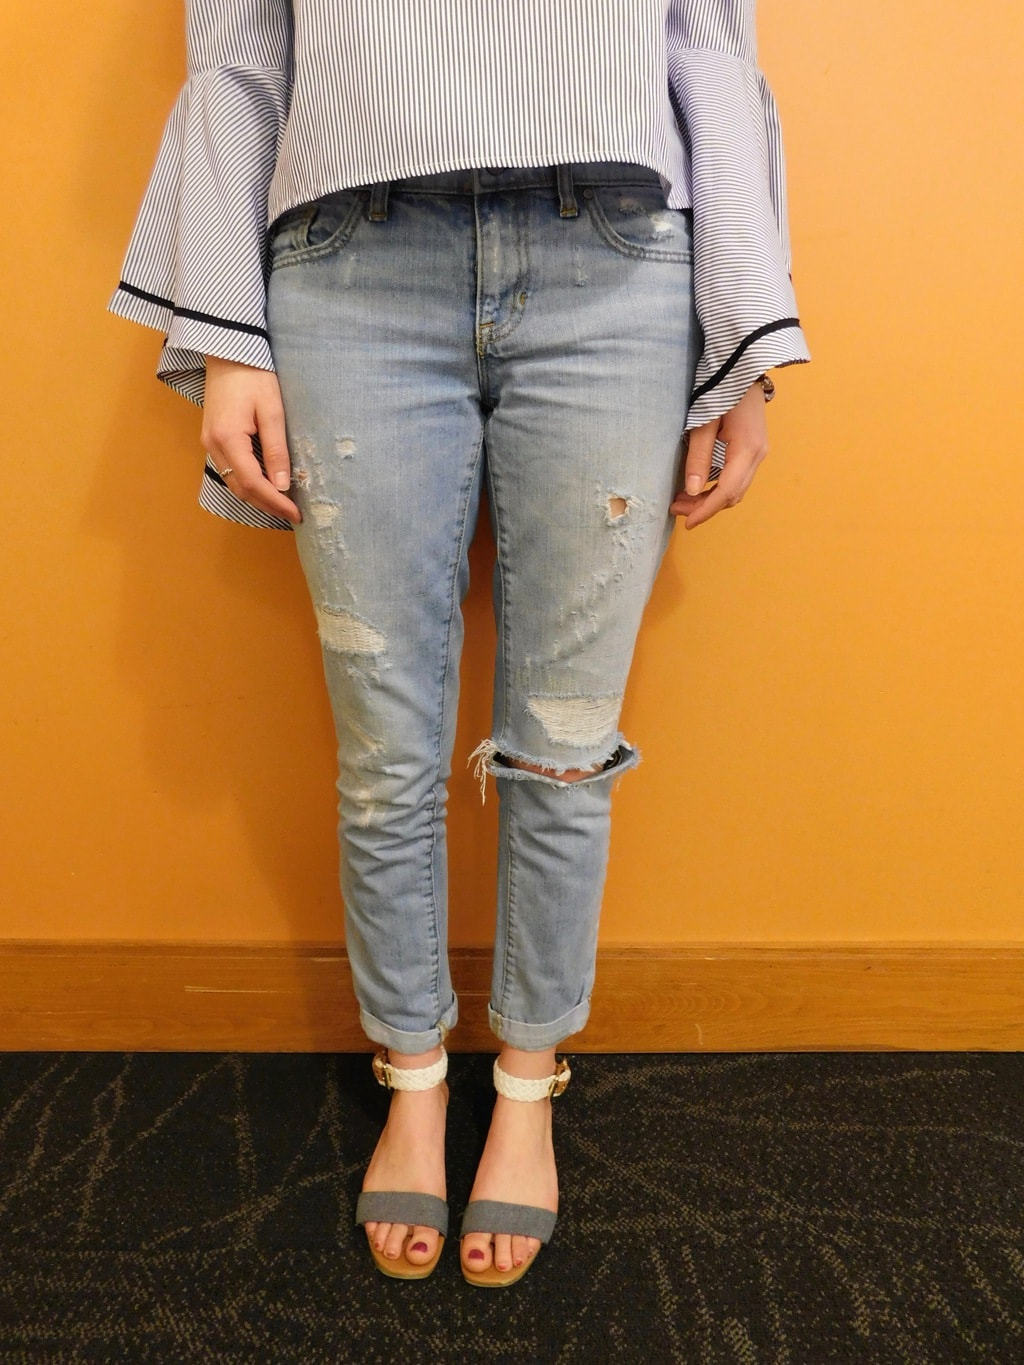 Danielle wears light-wash distressed denim jeans cuffed up with white and grey flat sandals.